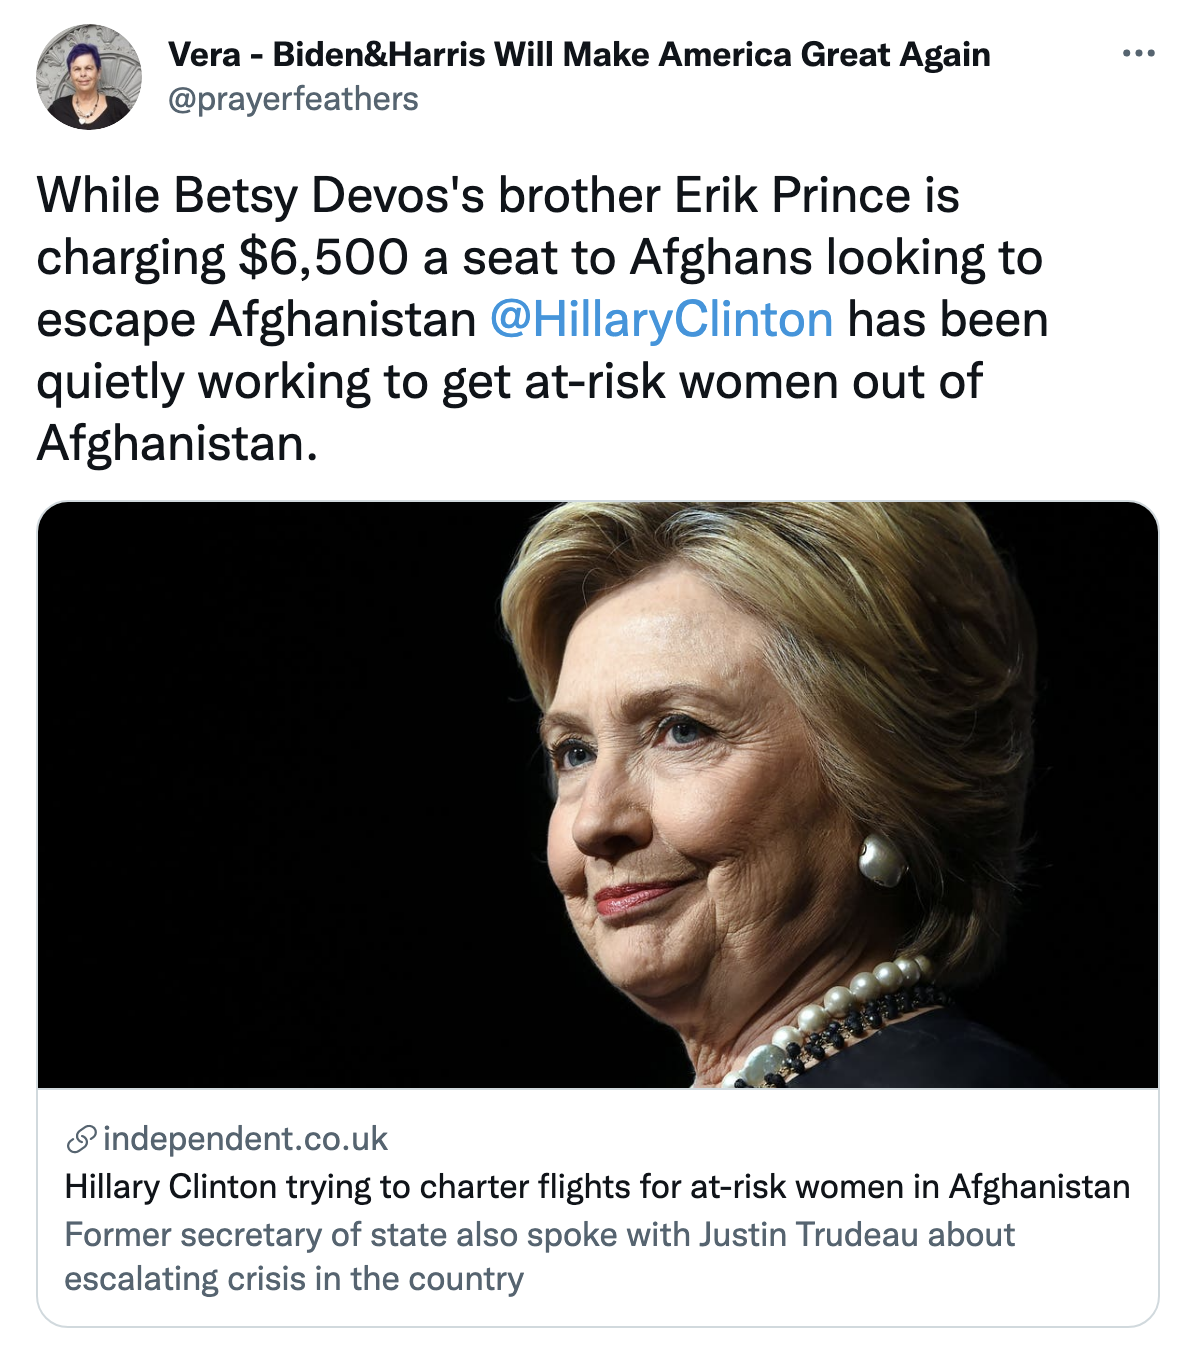 Screen-Shot-2021-08-25-at-3.45.53-PM Hillary Clinton Flies Targeted Afghan Women To Safety On Private Charters Featured Human Rights Politics Top Stories Women's Rights